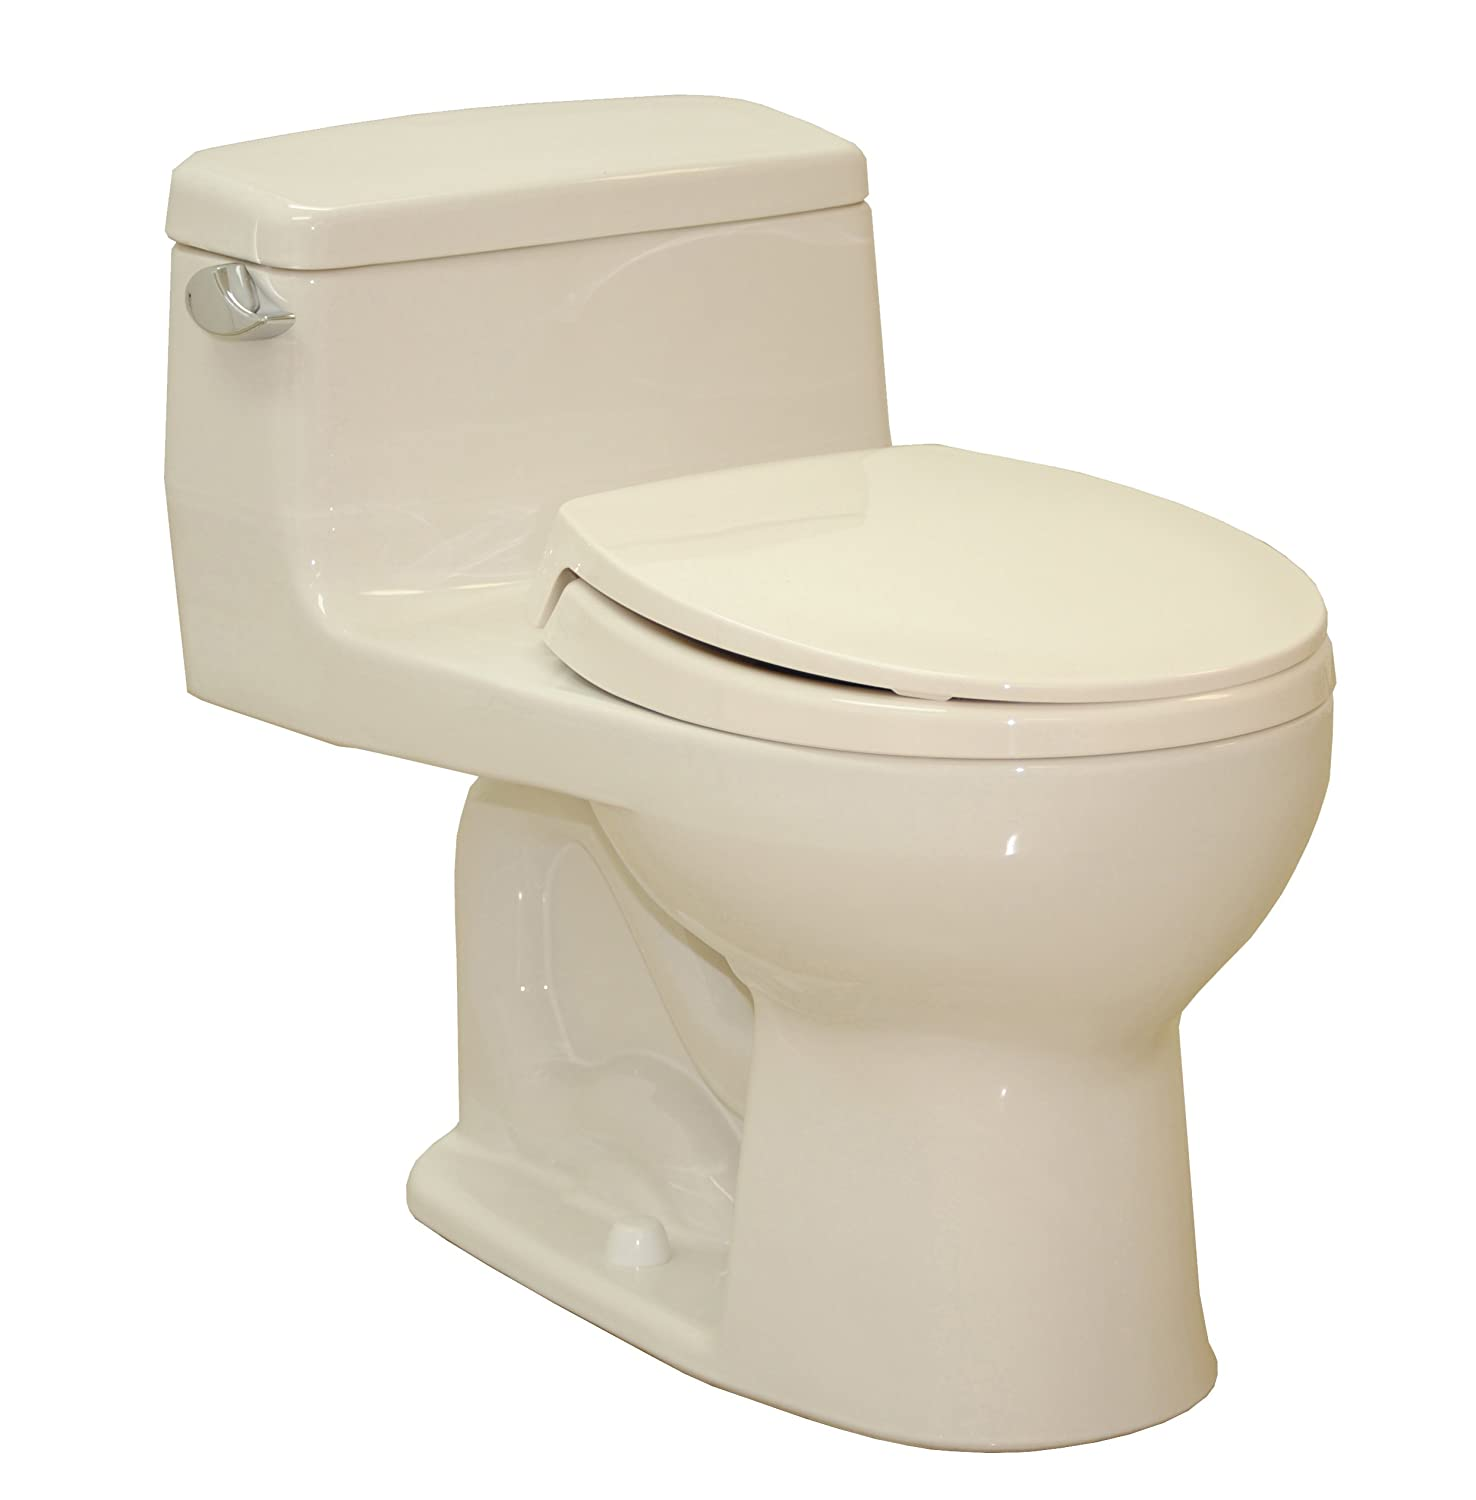 Supreme e Piece Elongated Toilet 1 28 GPF Sedona Beige with